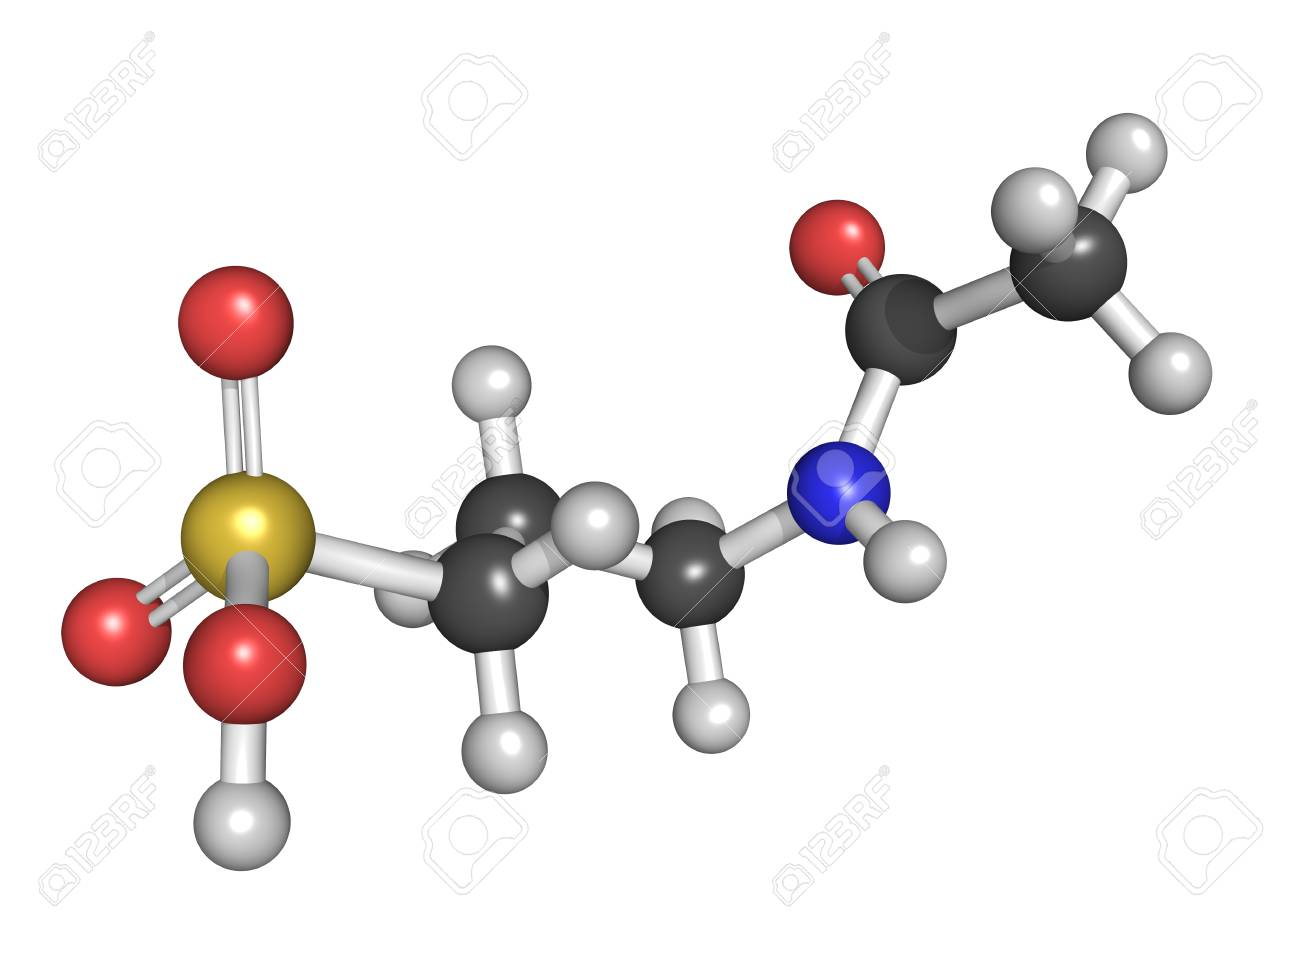 Acamprosate alcoholism treatment drug, chemical structure. Atoms are represented as spheres with conventional color coding Stock Photo - 23152980